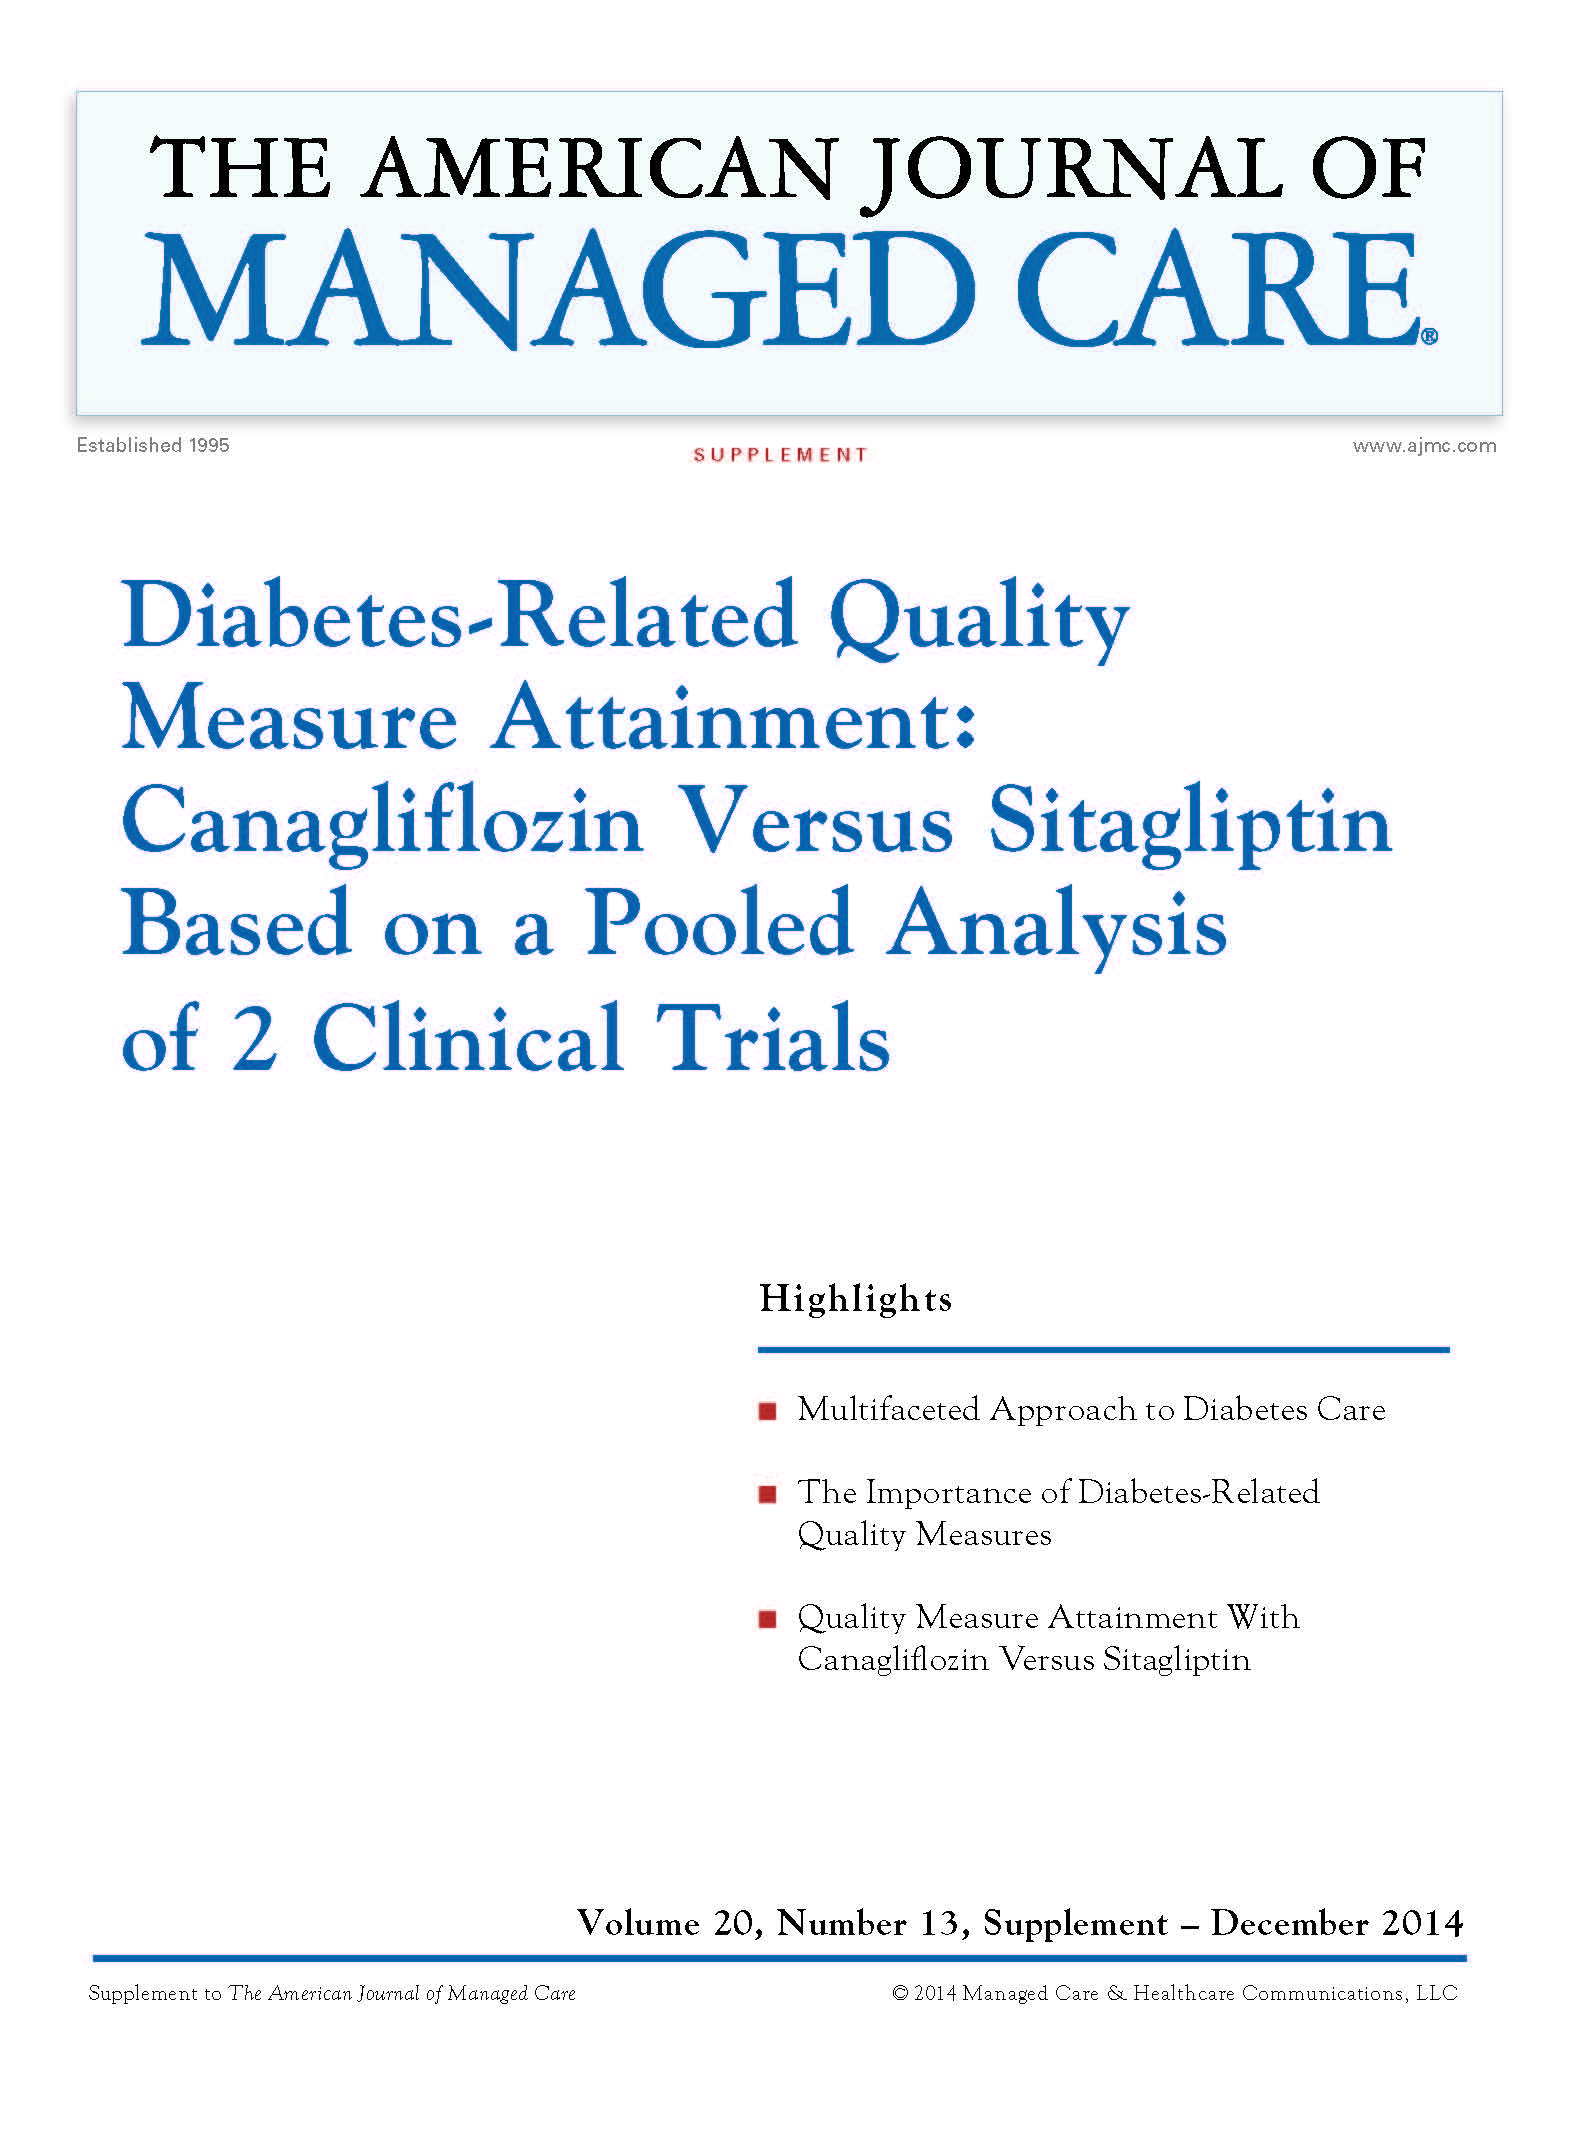 Diabetes-Related Quality Measure Attainment: Canagliflozin Versus Sitagliptin Based on a Pooled Analysis of 2 Clinical Trials